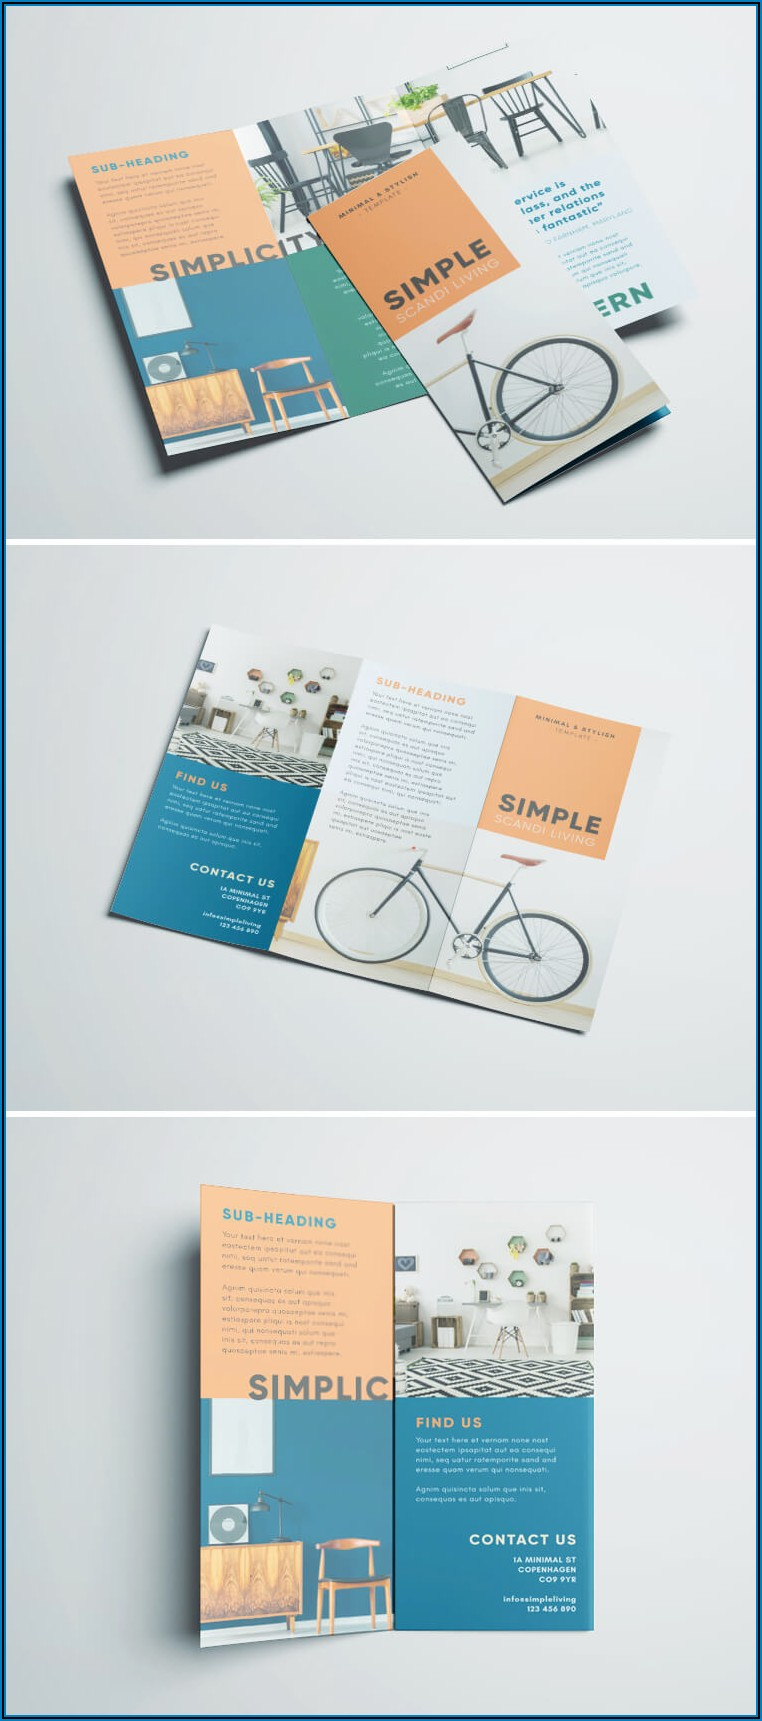 3 Fold Brochure Indesign Template